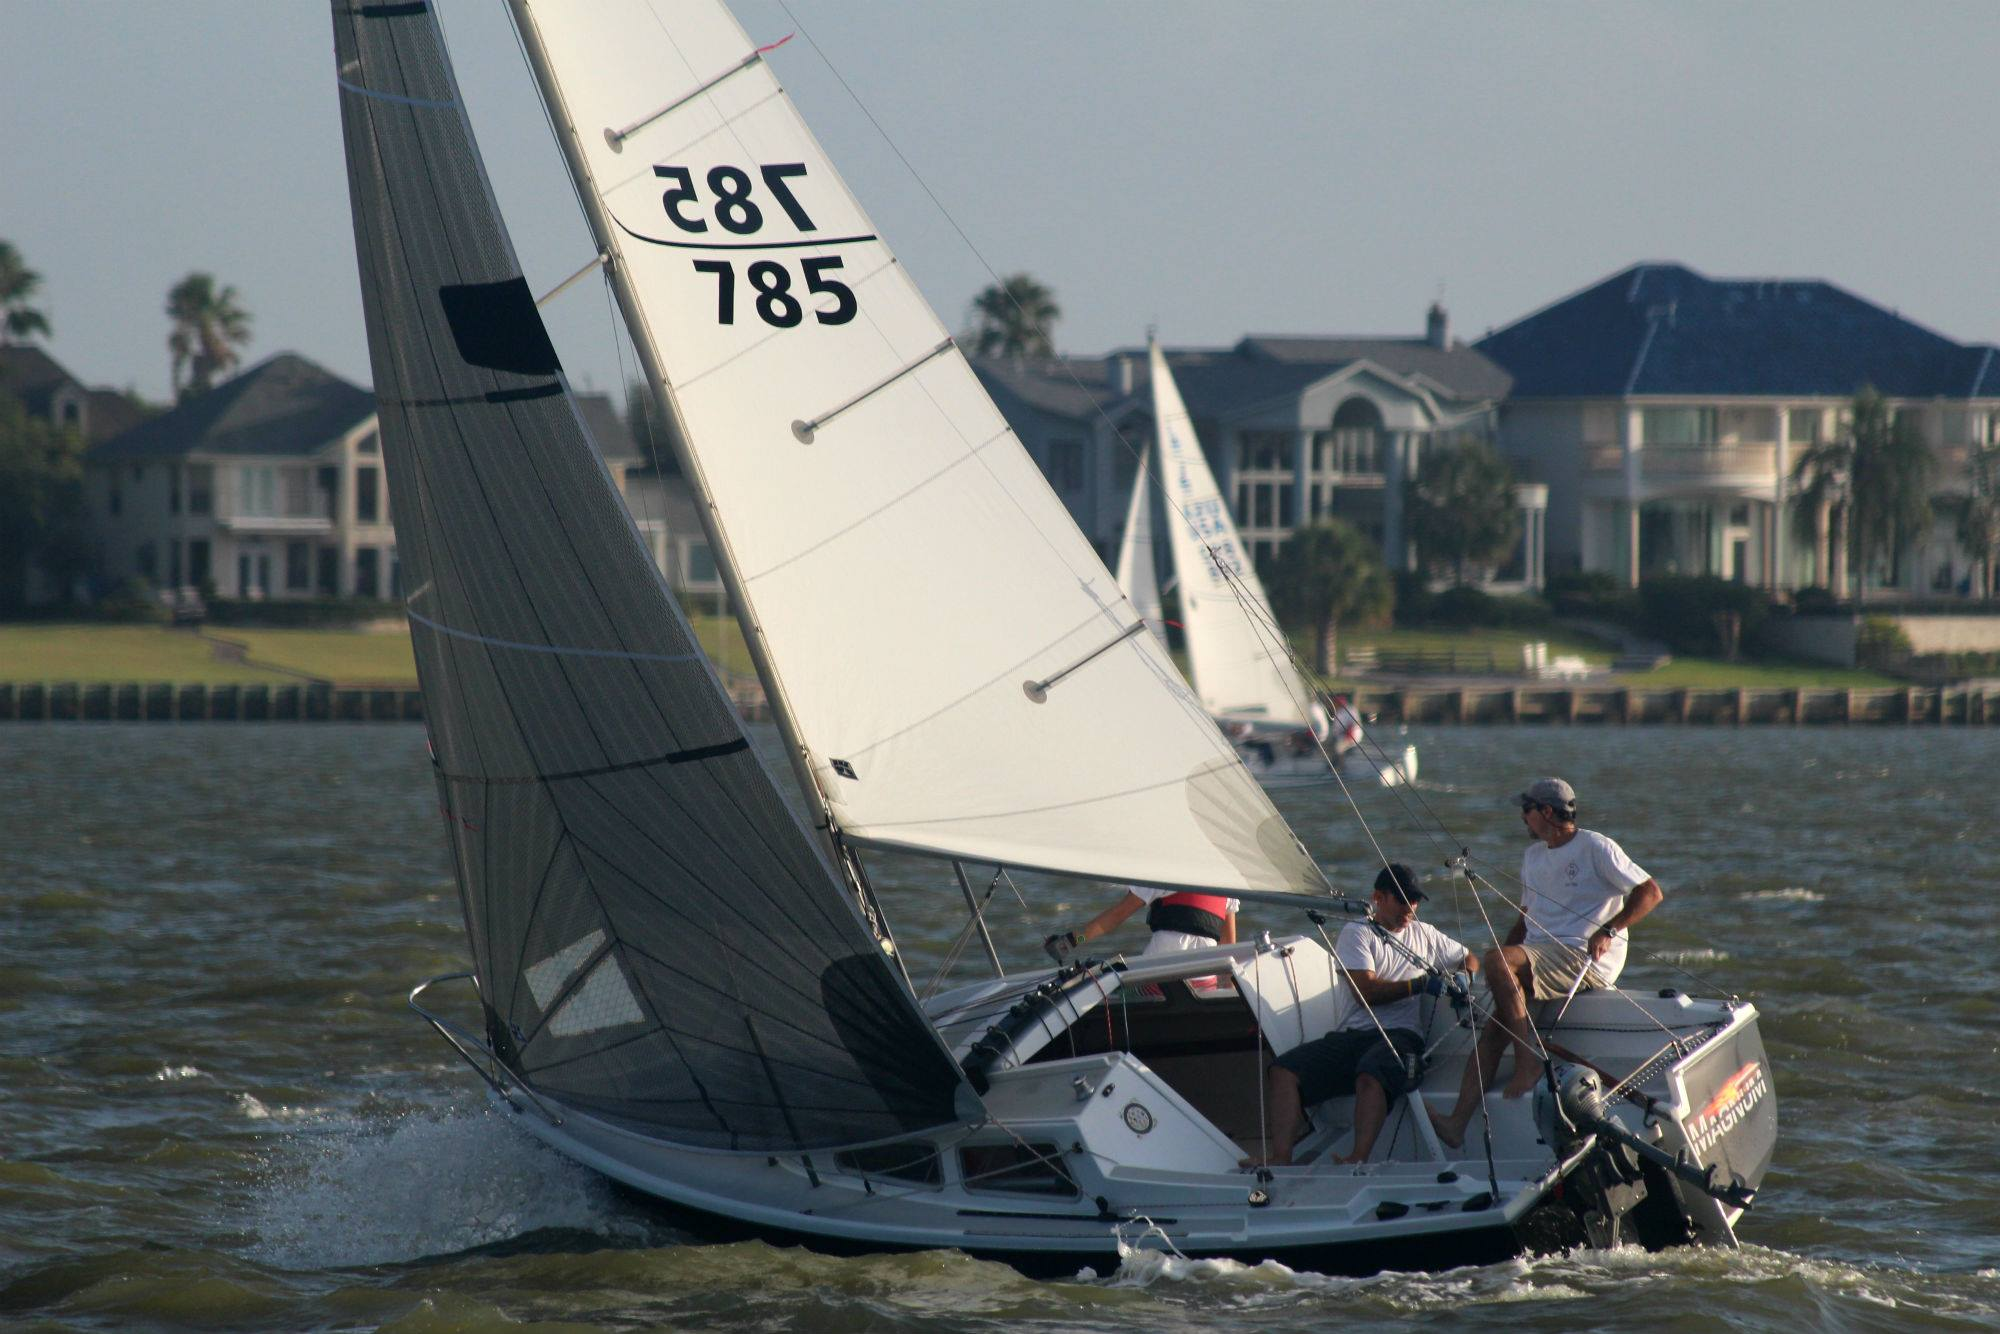 UK's racing genoa is a tri-radial construction made with either black aramid fibers or black polyester fibers.